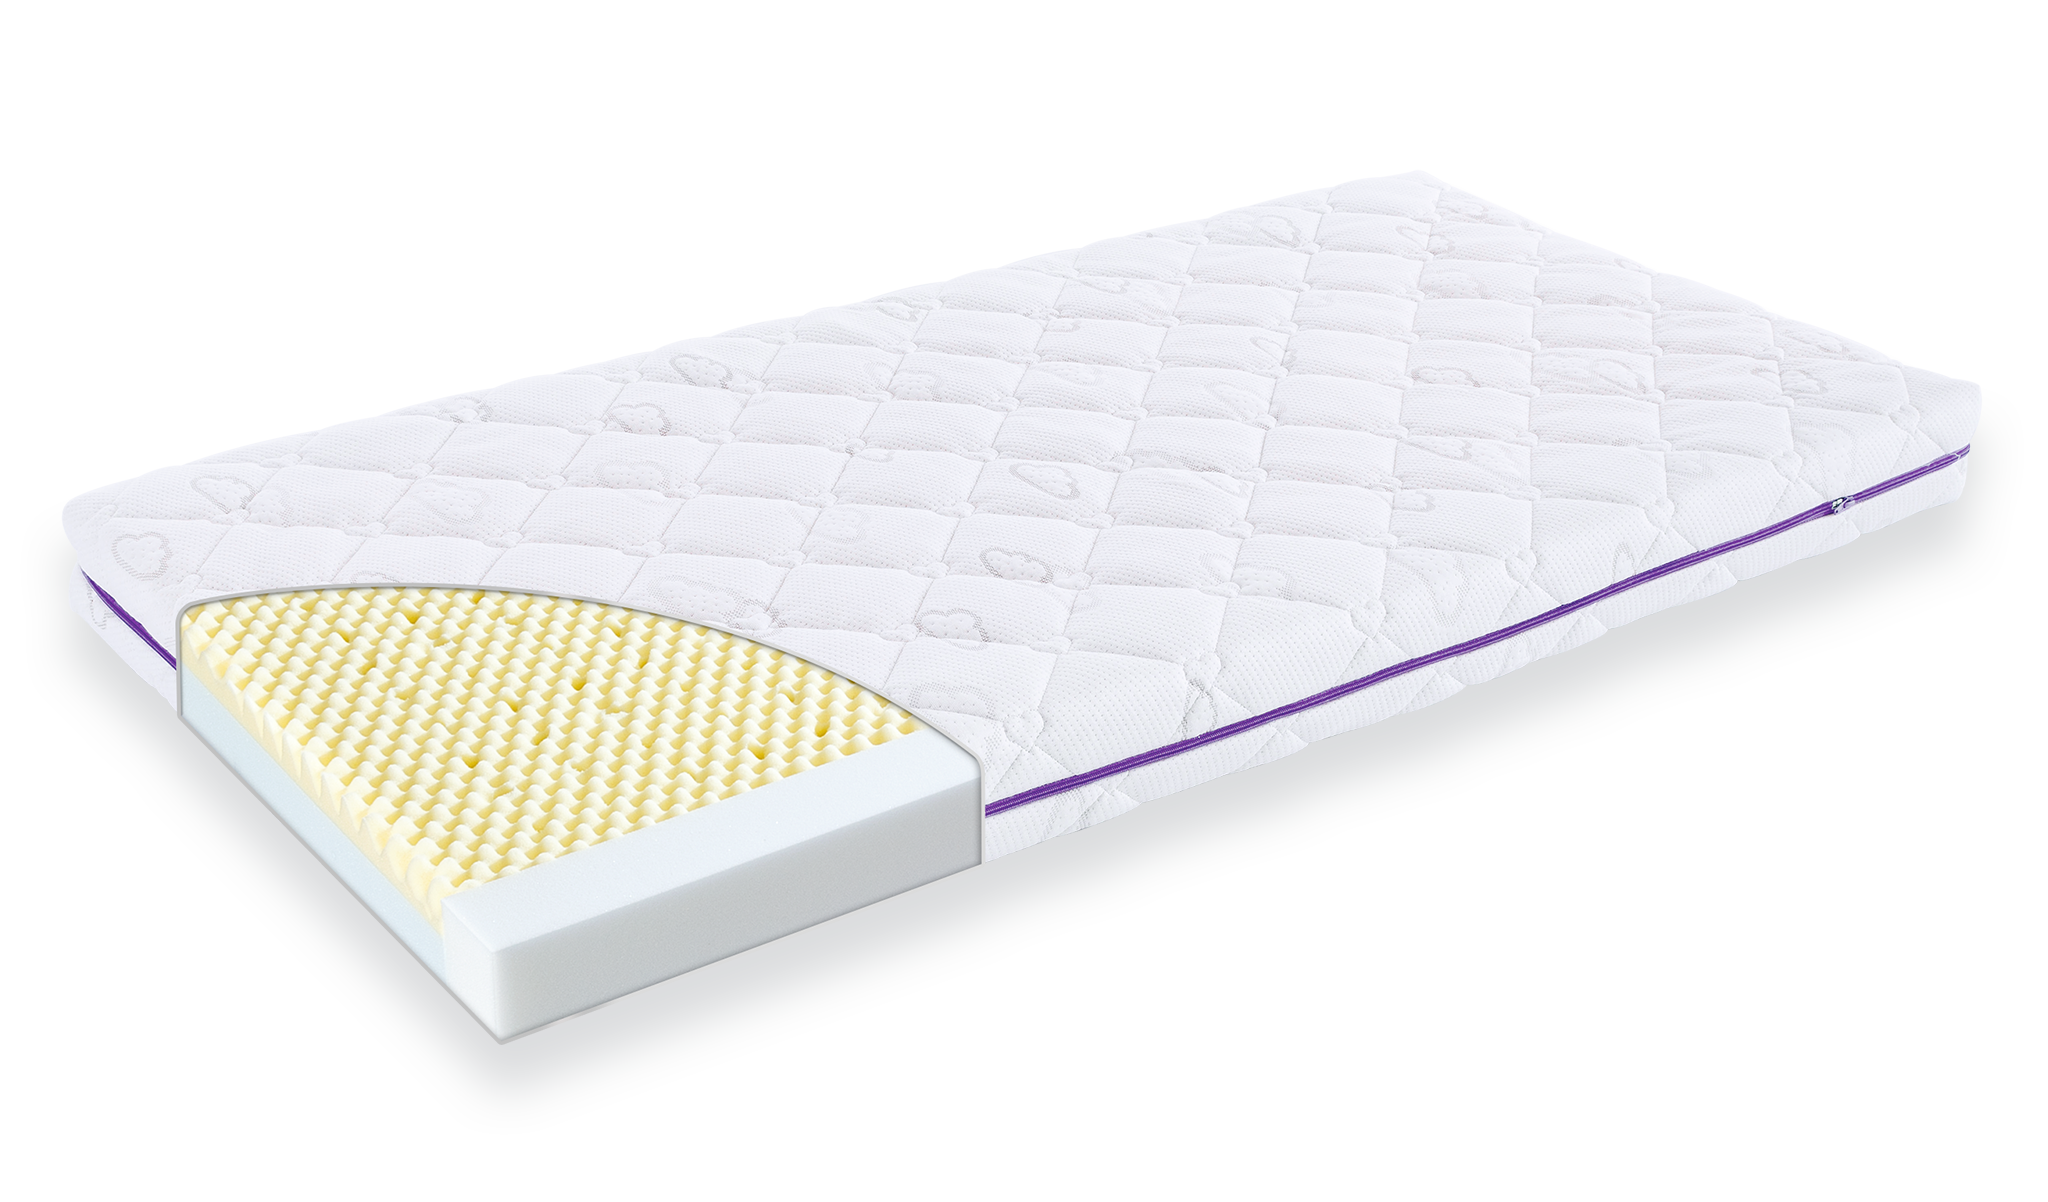 T014702 - mattress SUNSET